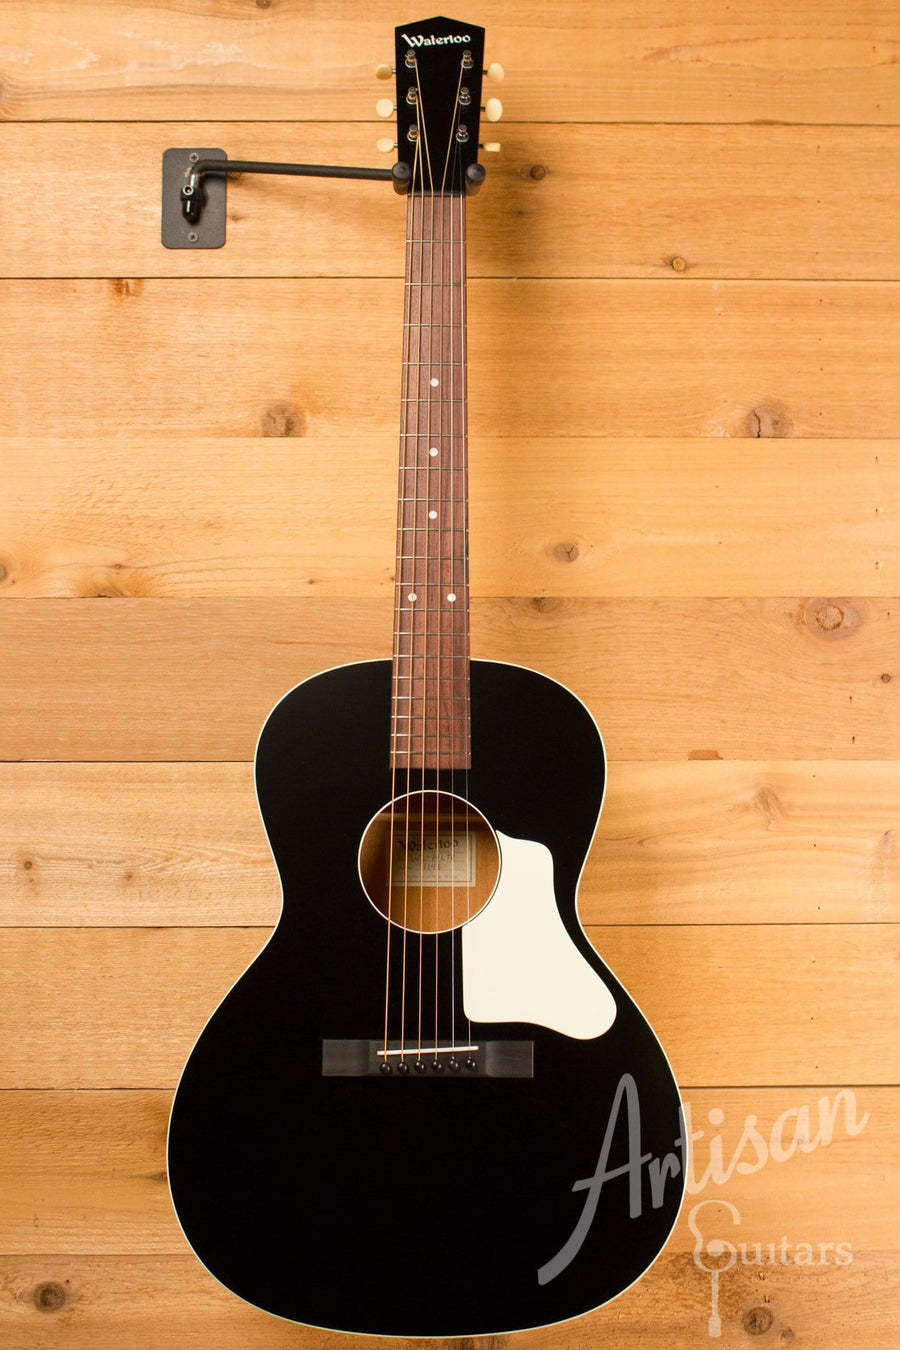 Waterloo WL-14L Guitar with Truss Rod Jet Black Finish ID-10363 - Artisan Guitars